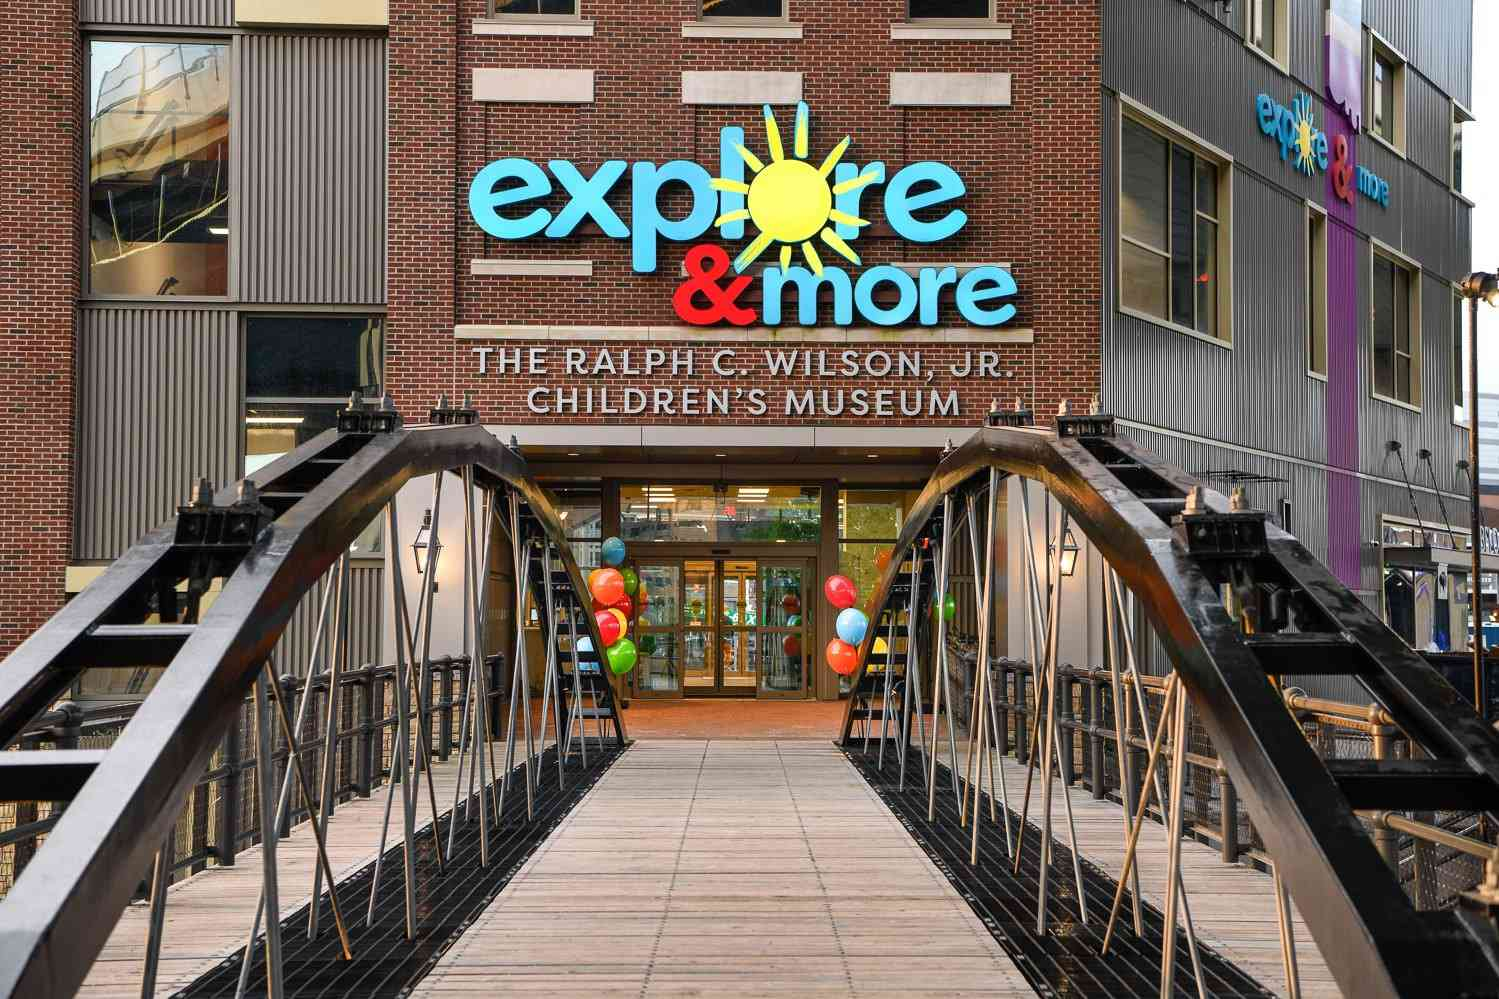 Entrance to the Explore & More Museum photographed from across a small footbridge